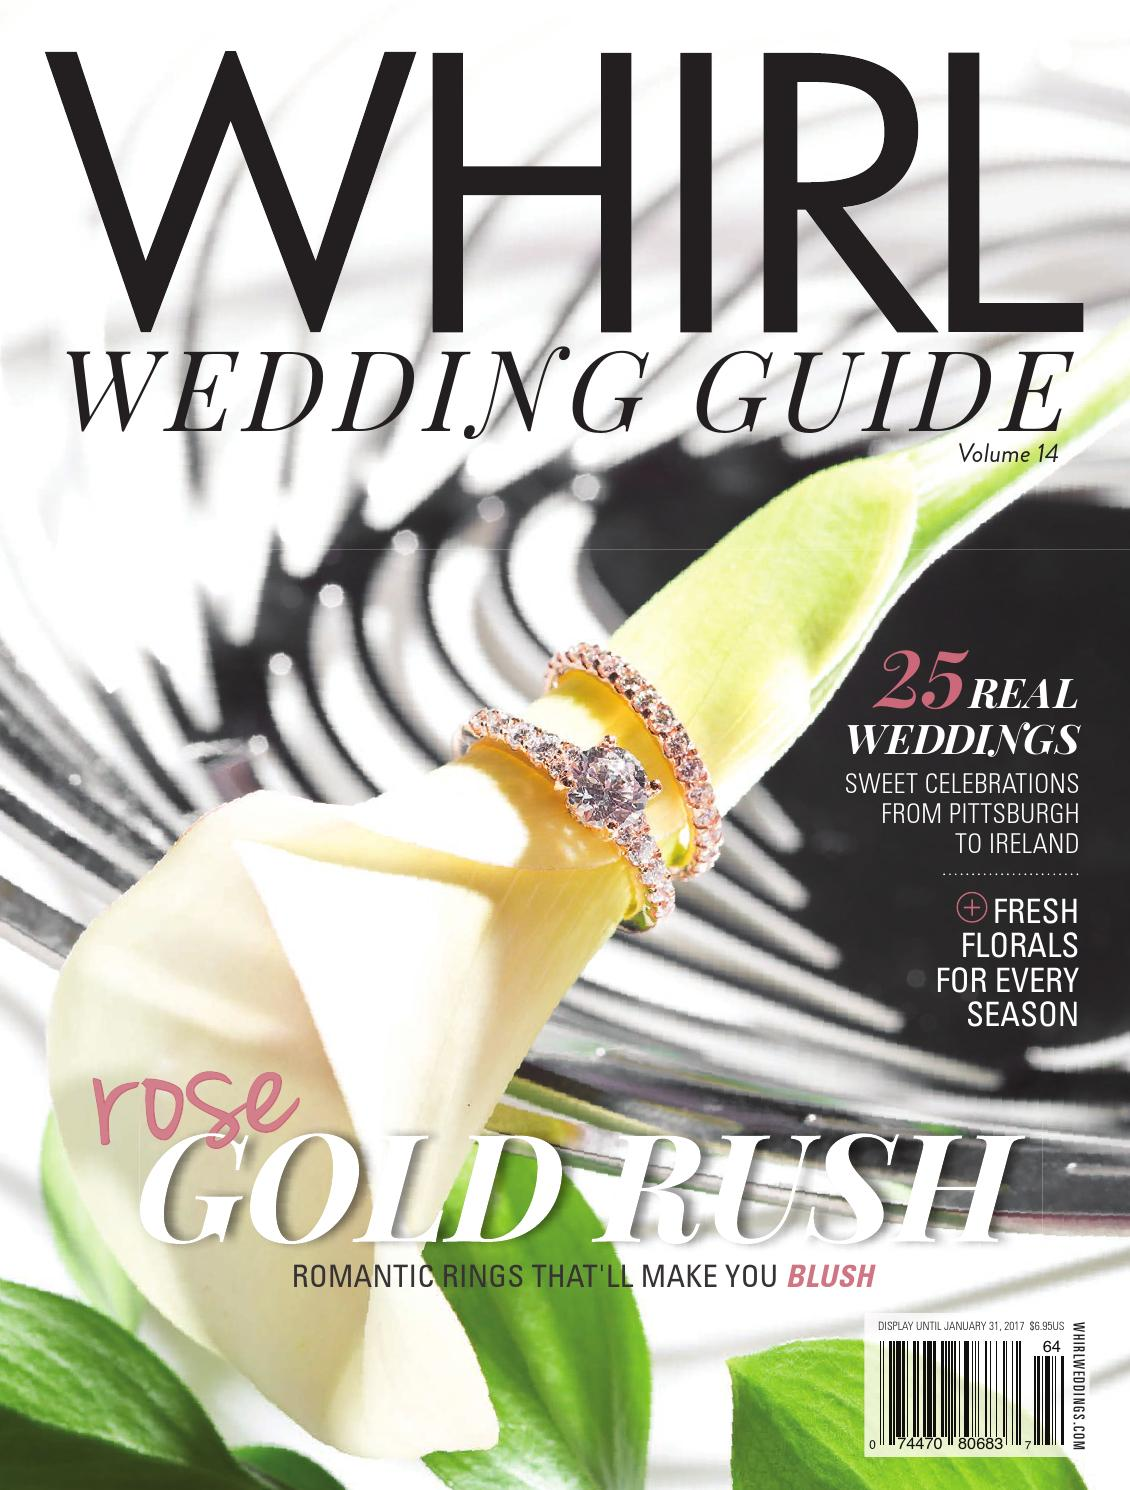 WHIRL Wedding Guide: Fall/Winter 2016 by WHIRL Publishing - issuu